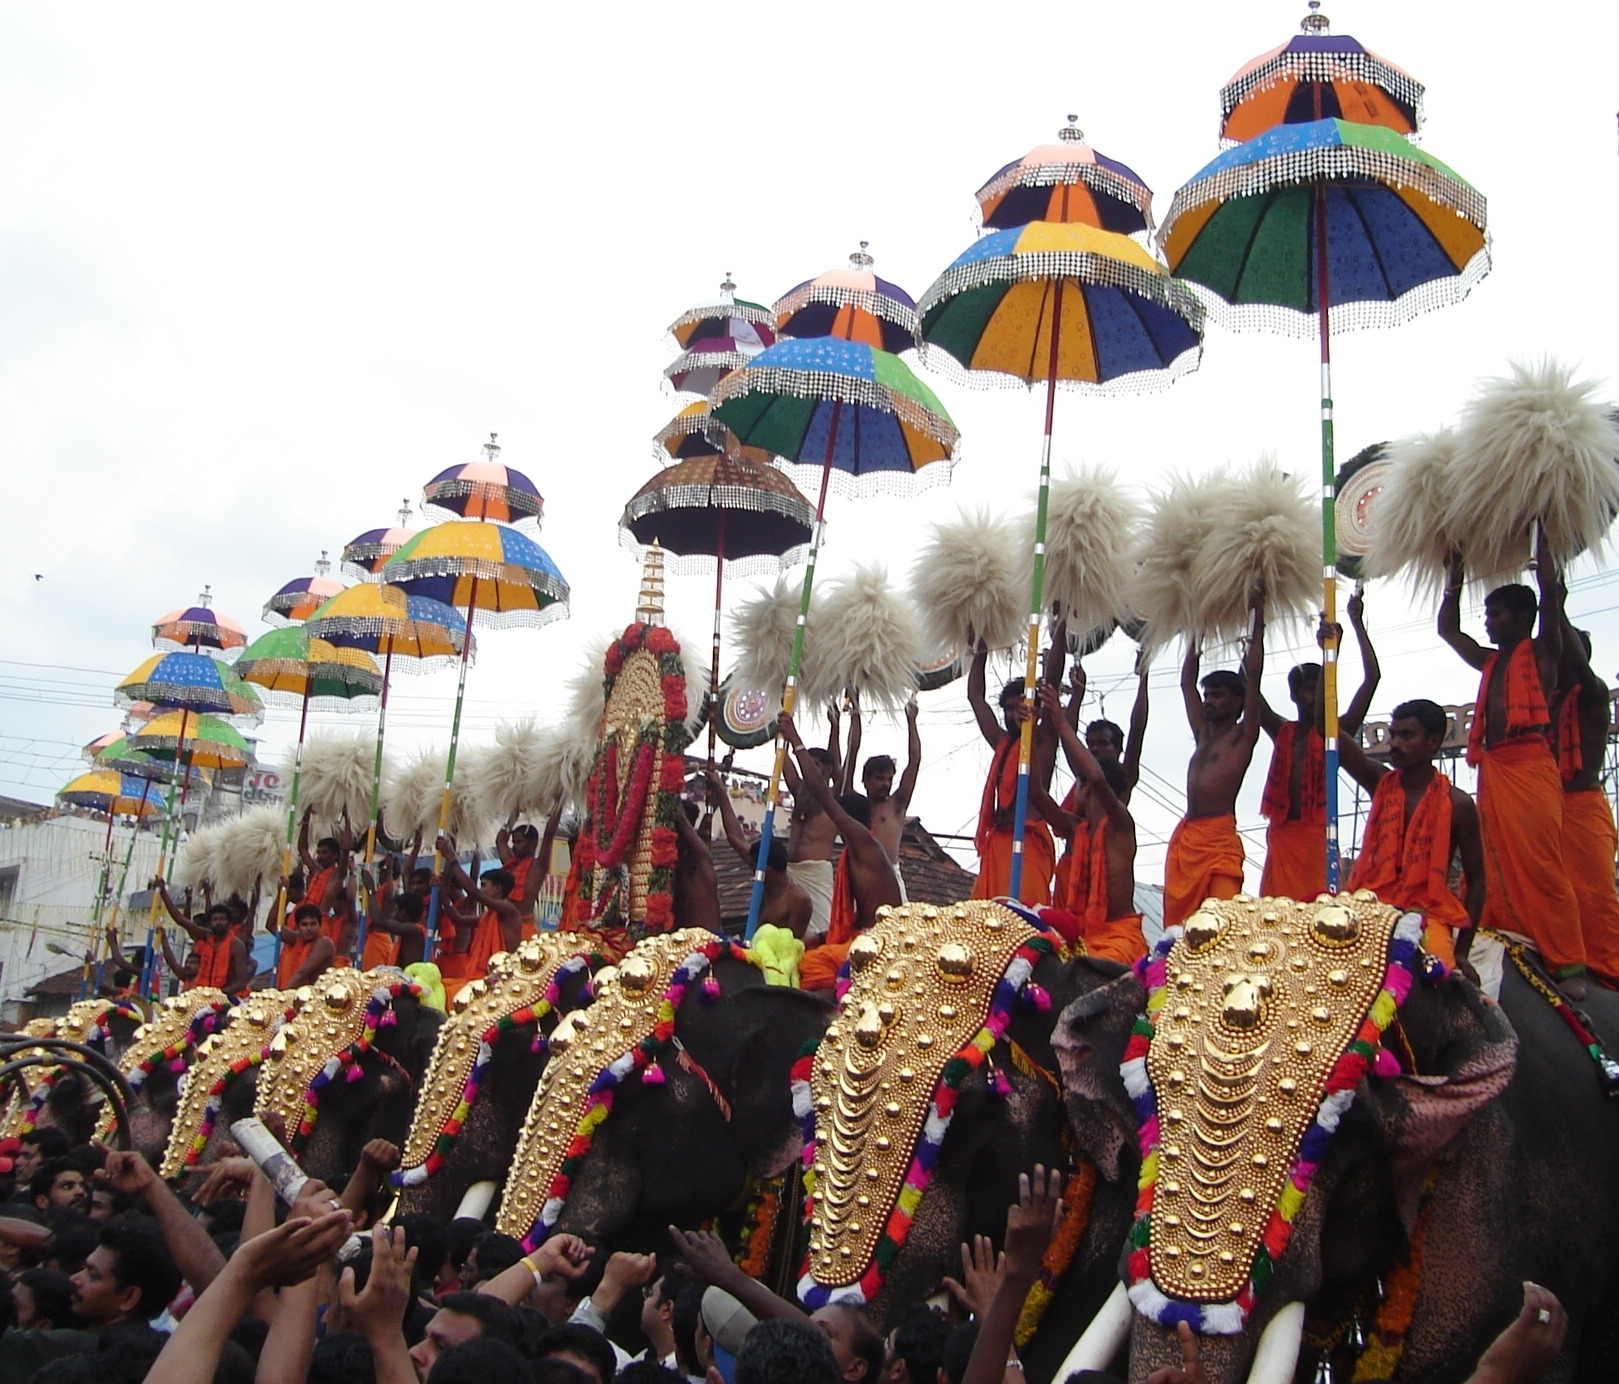 File:ThrissurPooram-Kuda.jpg - Wikimedia Commons